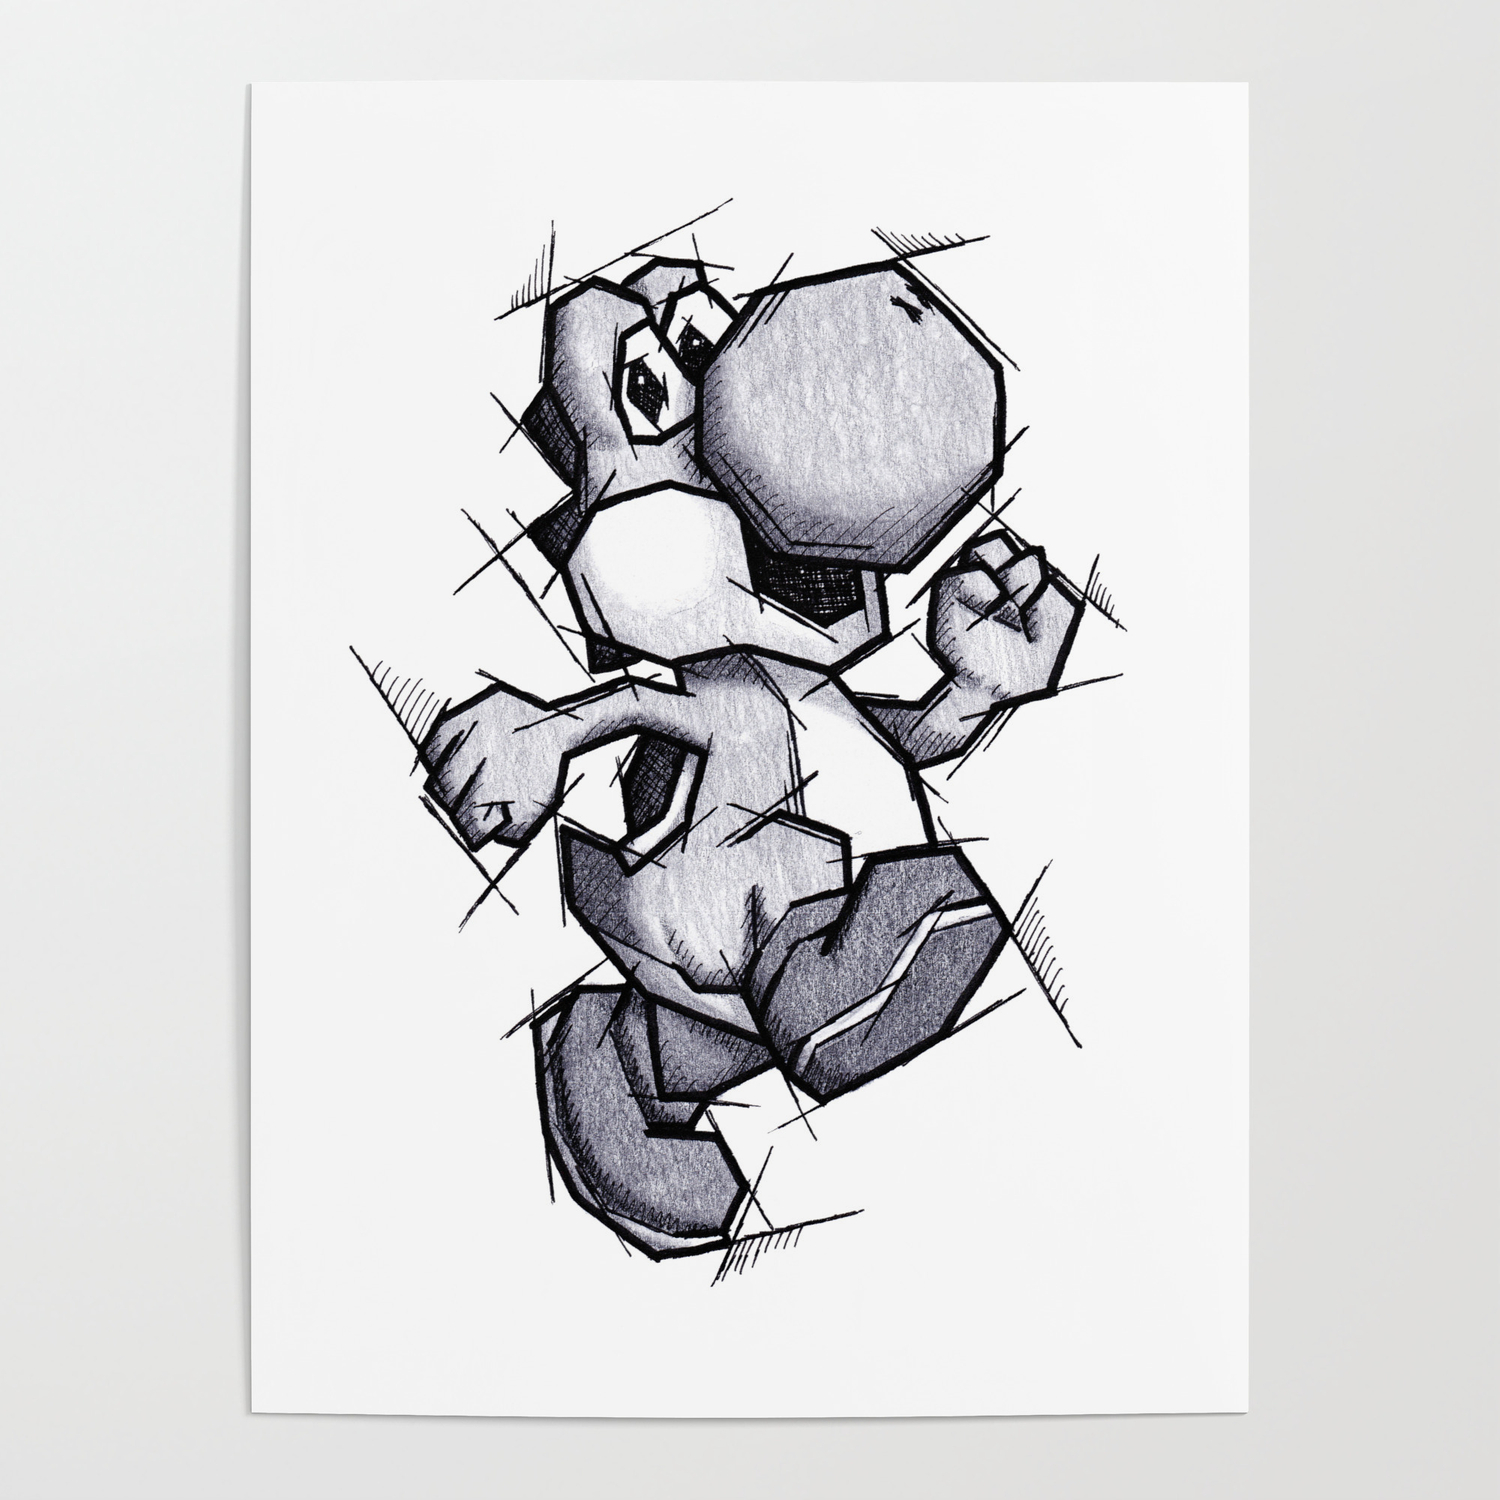 1500x1500 Yoshi Handmade Drawing, Games Art, Super Mario, Nintendo Art